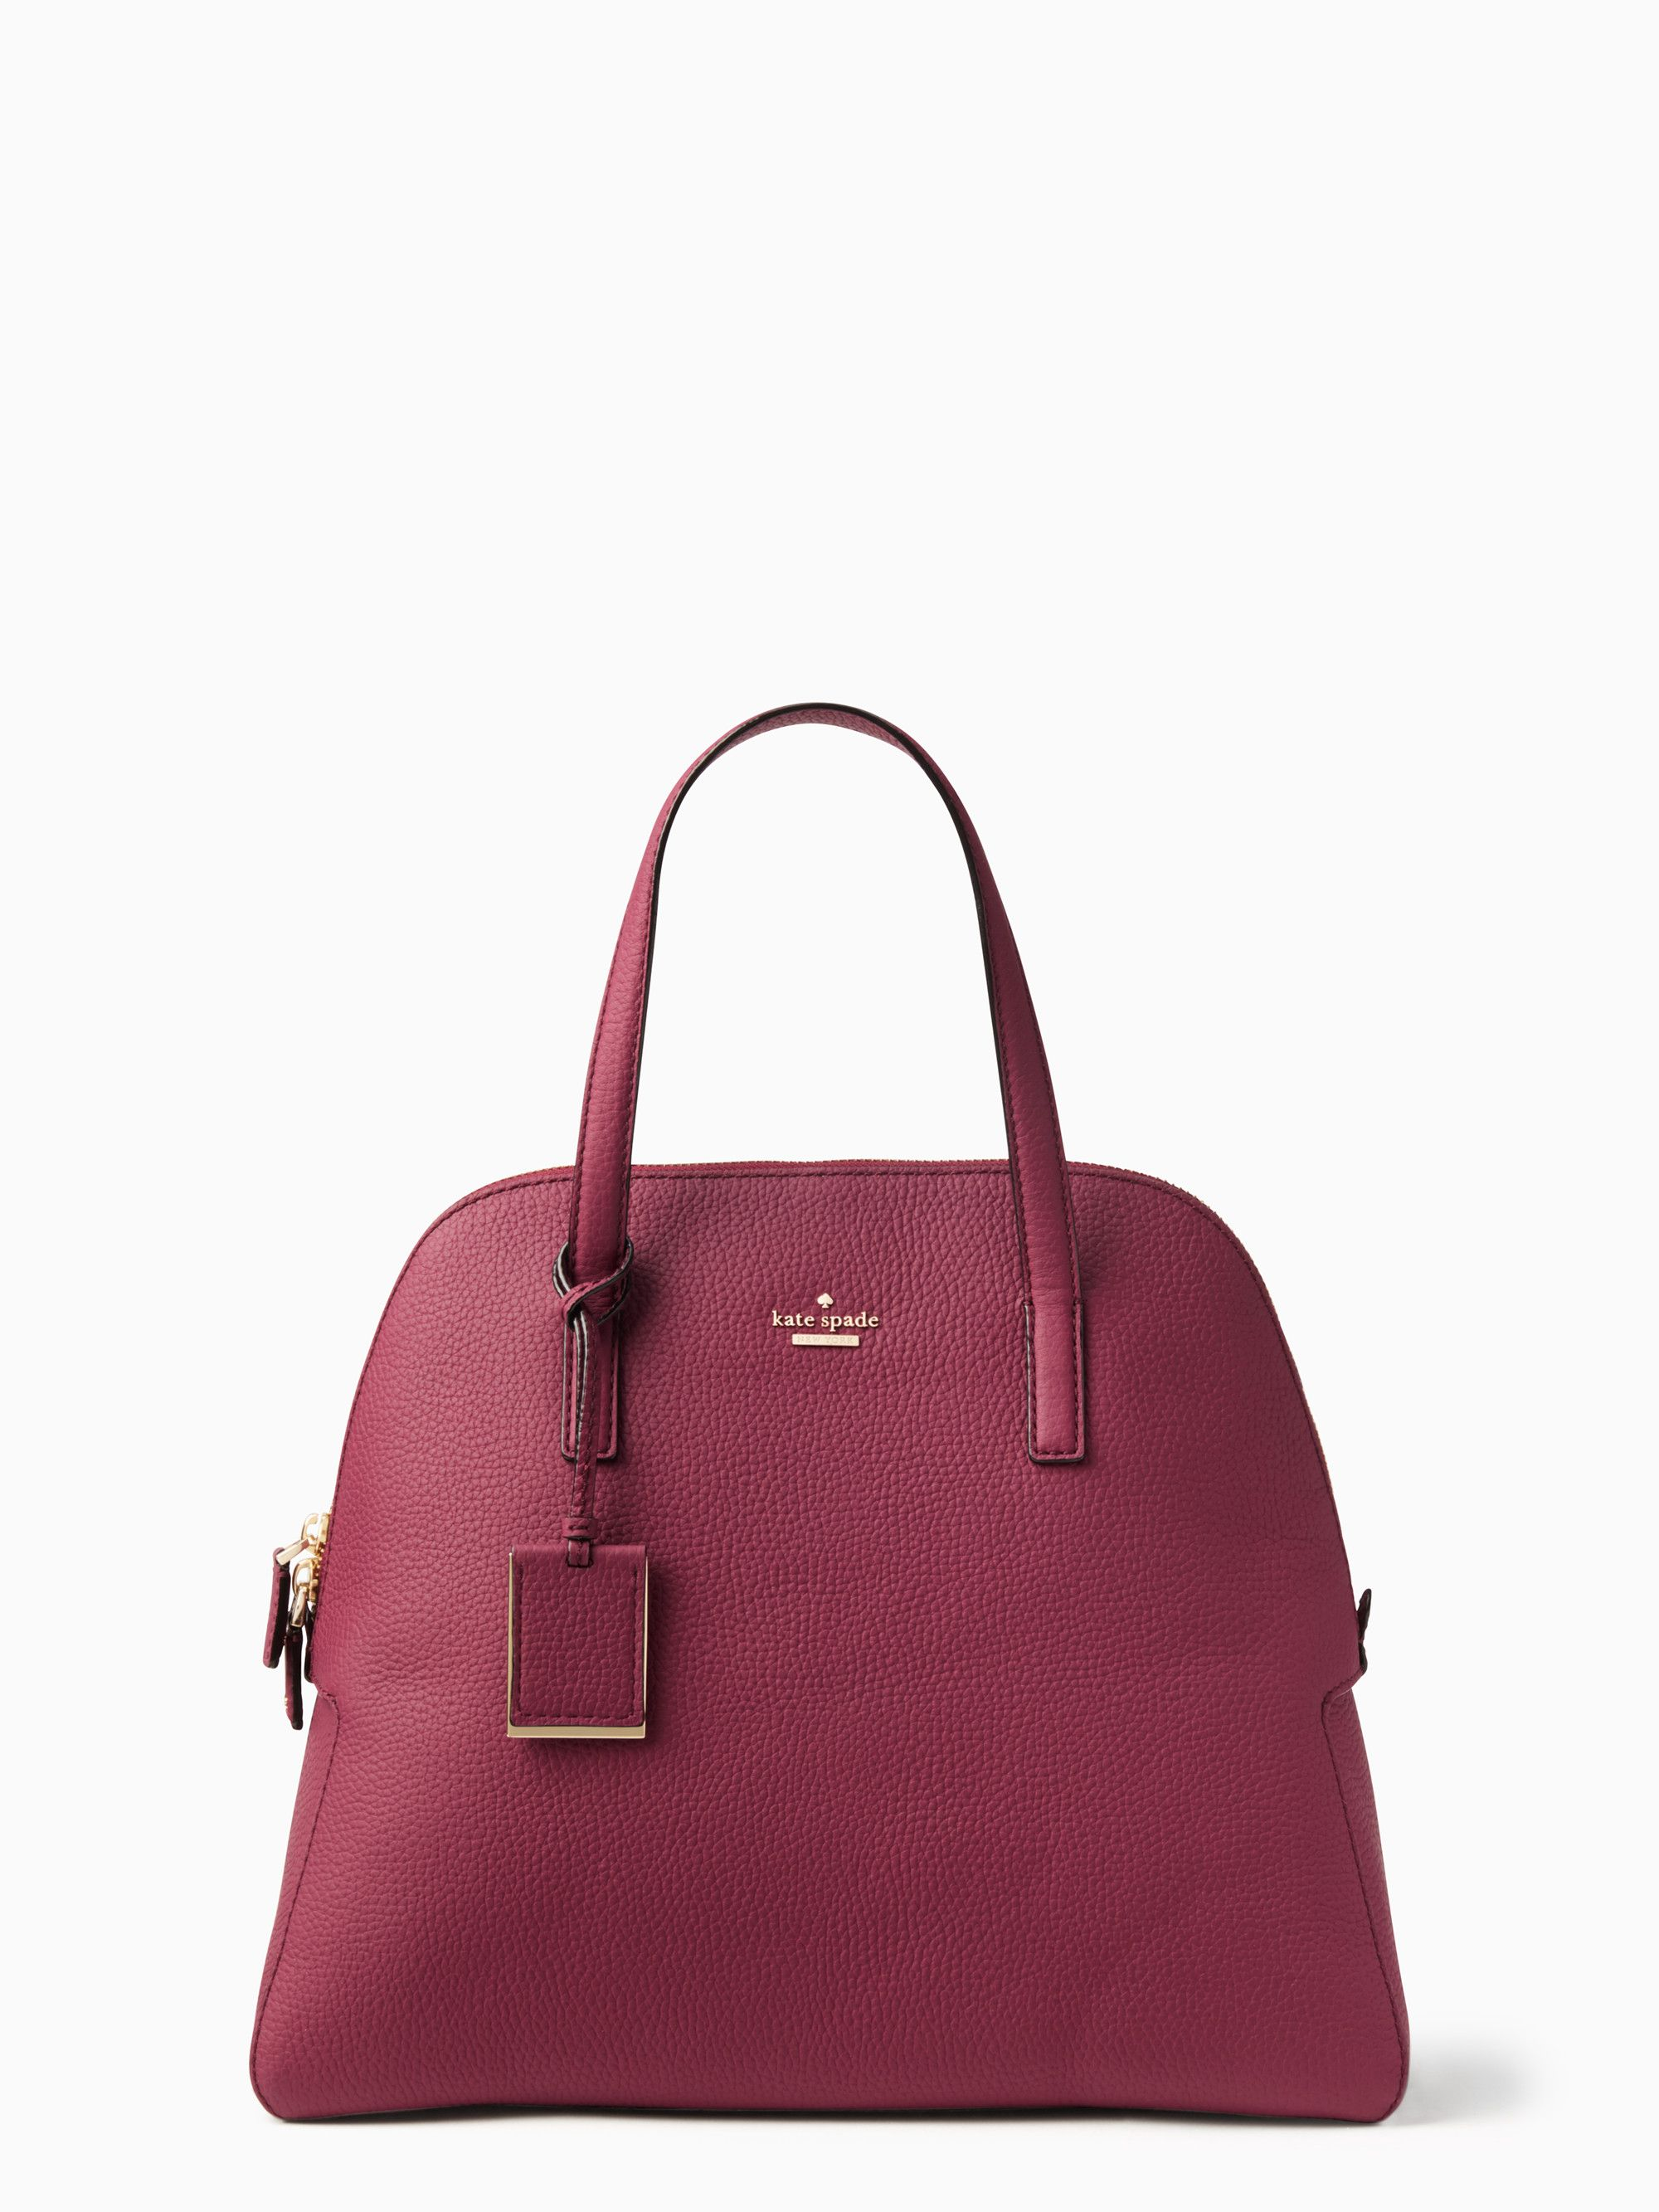 Our Margot Has Gotten A Mega Makeover This New Supersized Version Of Por Handbag Is Made From Soft Pebbled Leather And Finished With Matching